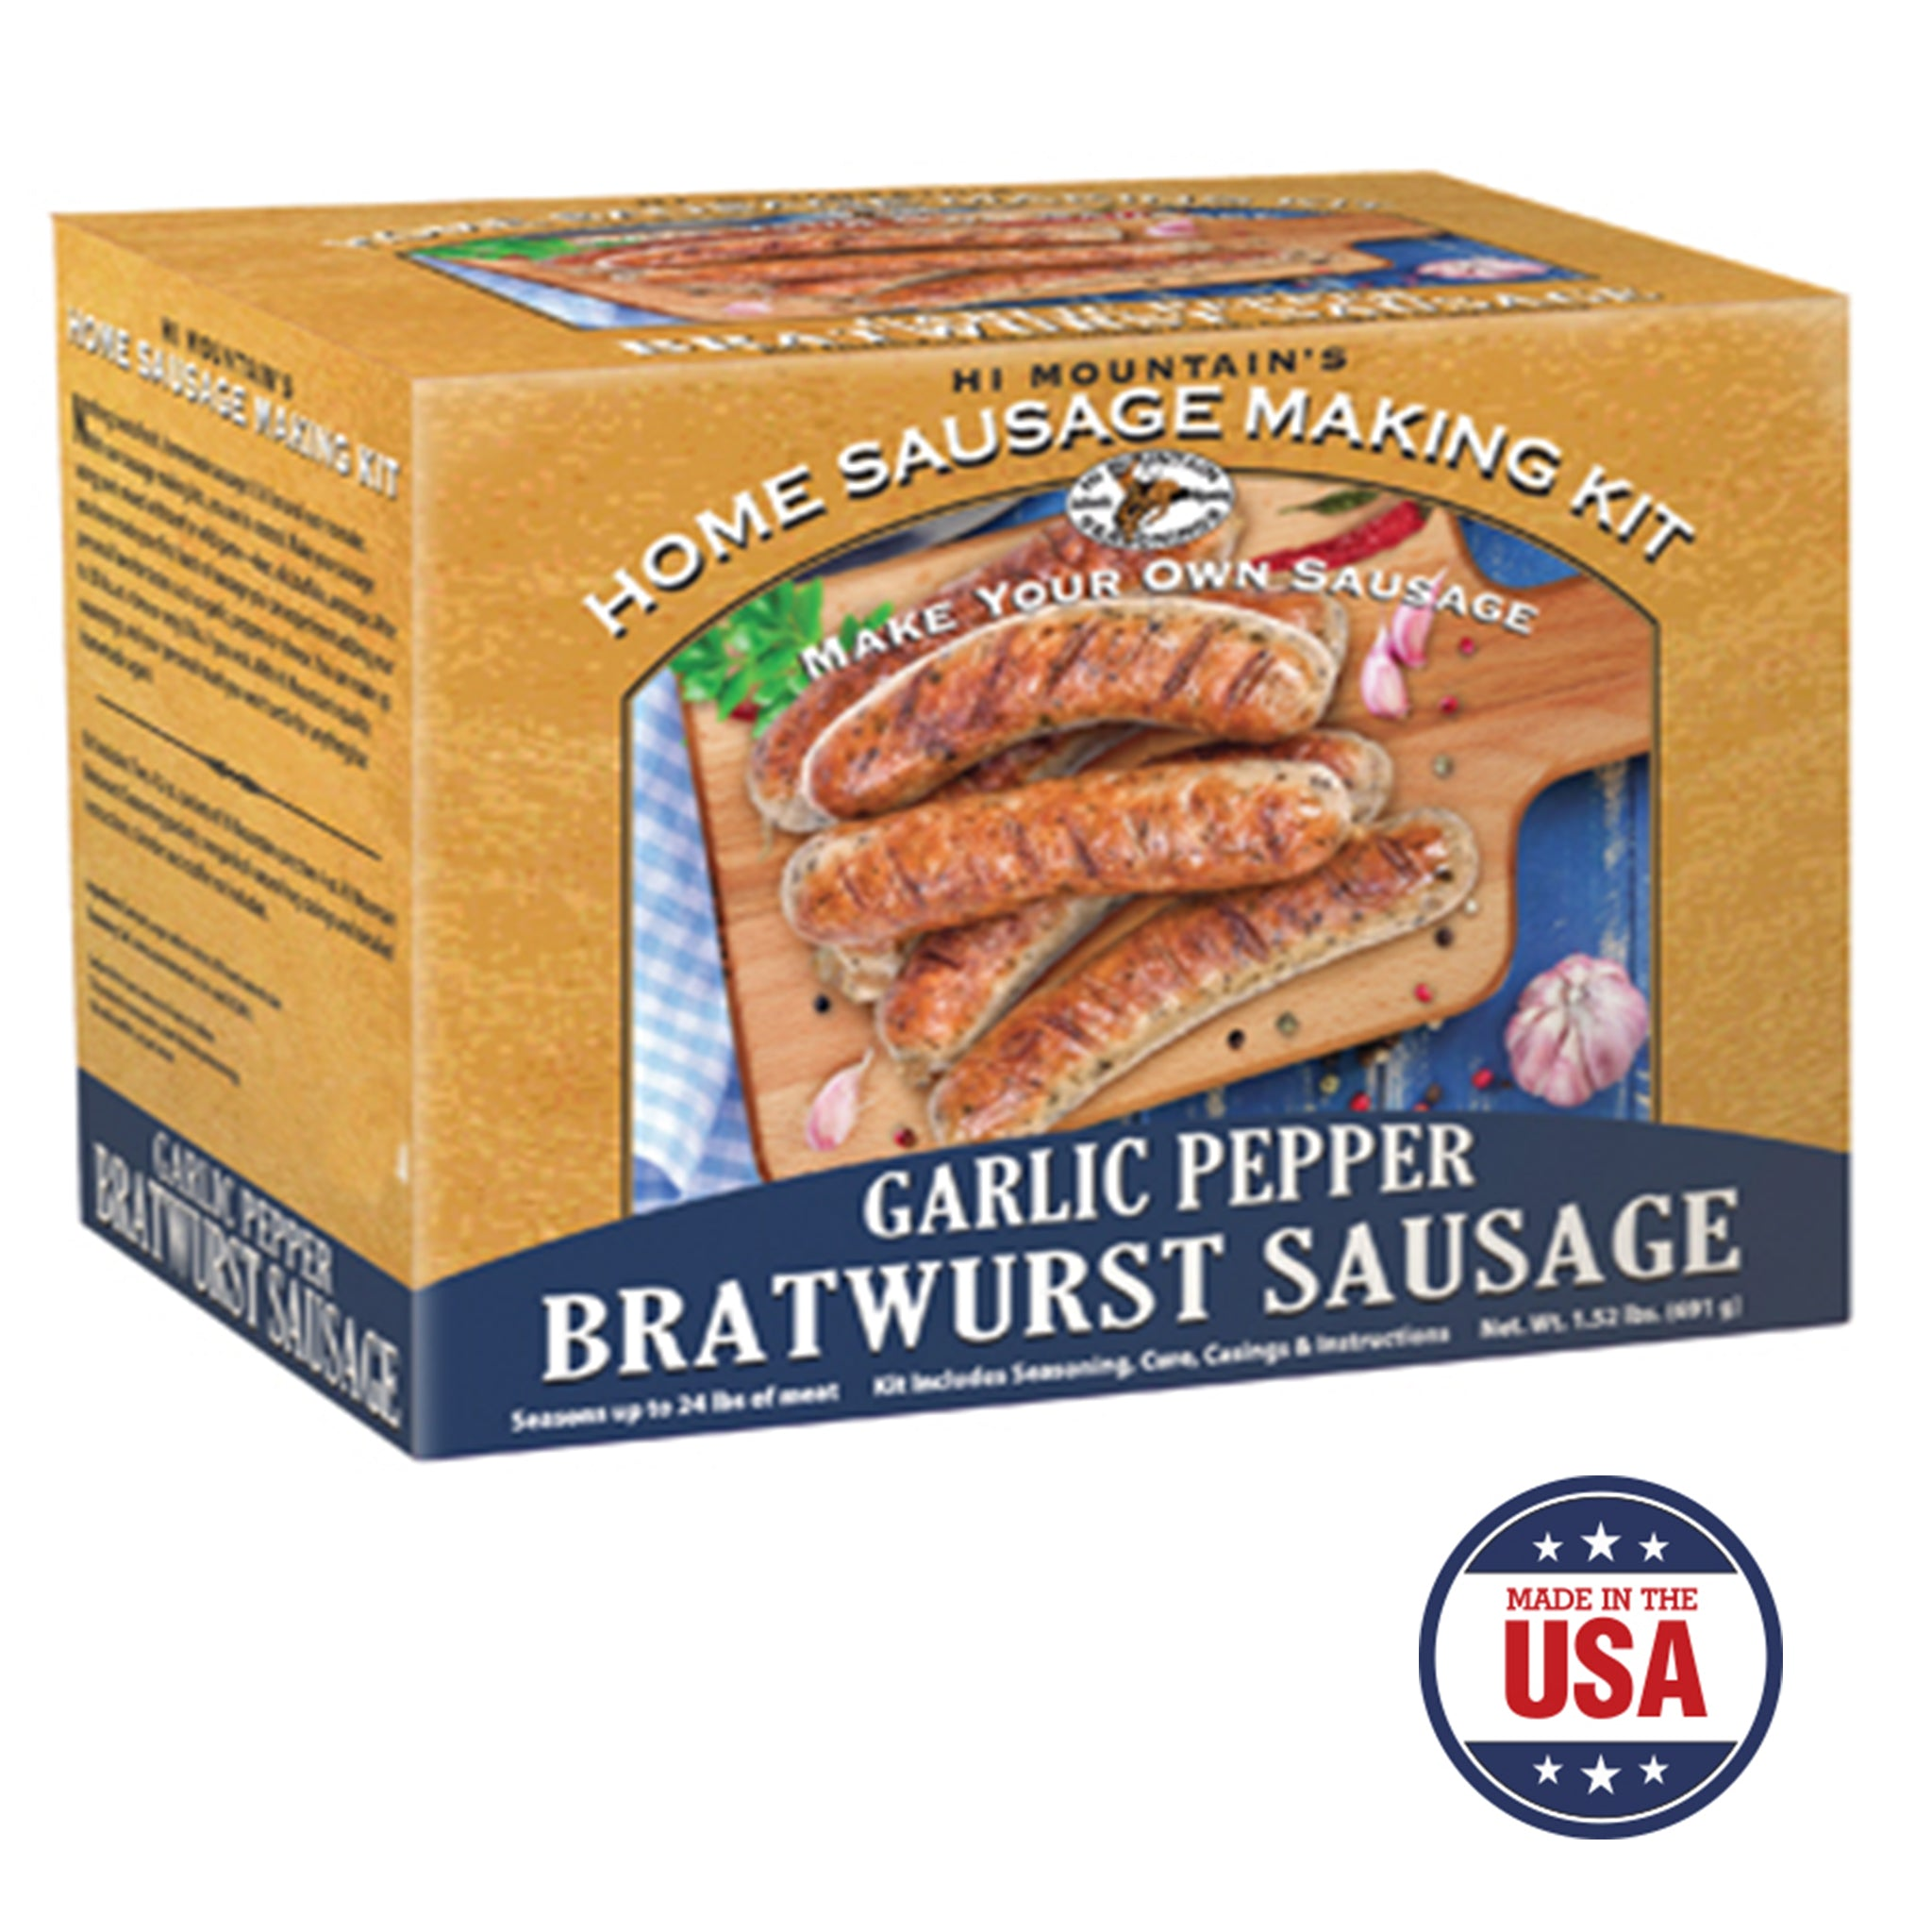 Garlic Pepper Bratwurst Making Kit